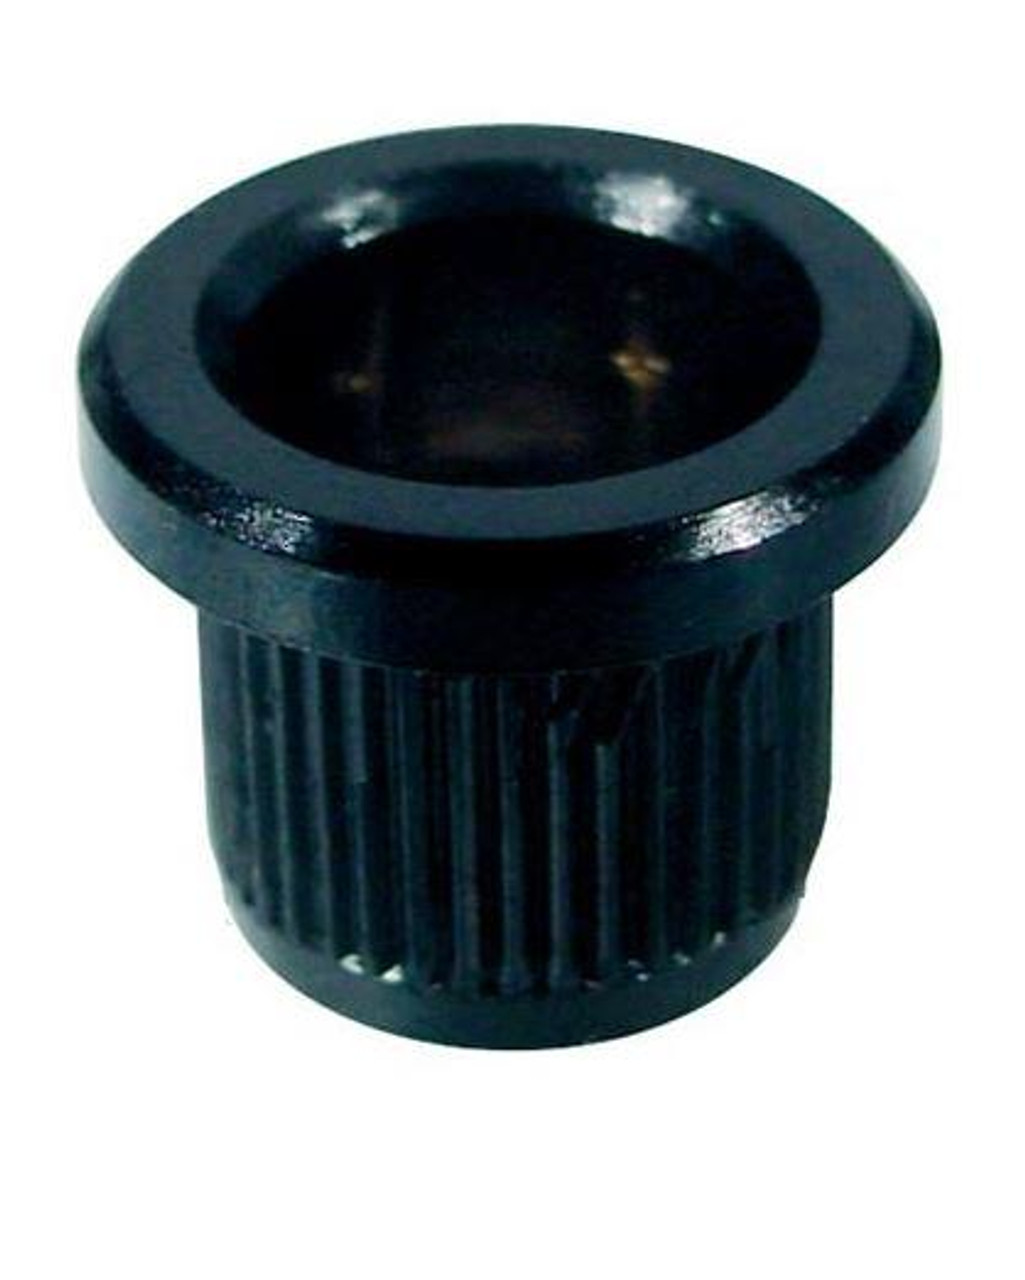 Bass Guitar String Ferrule-Black